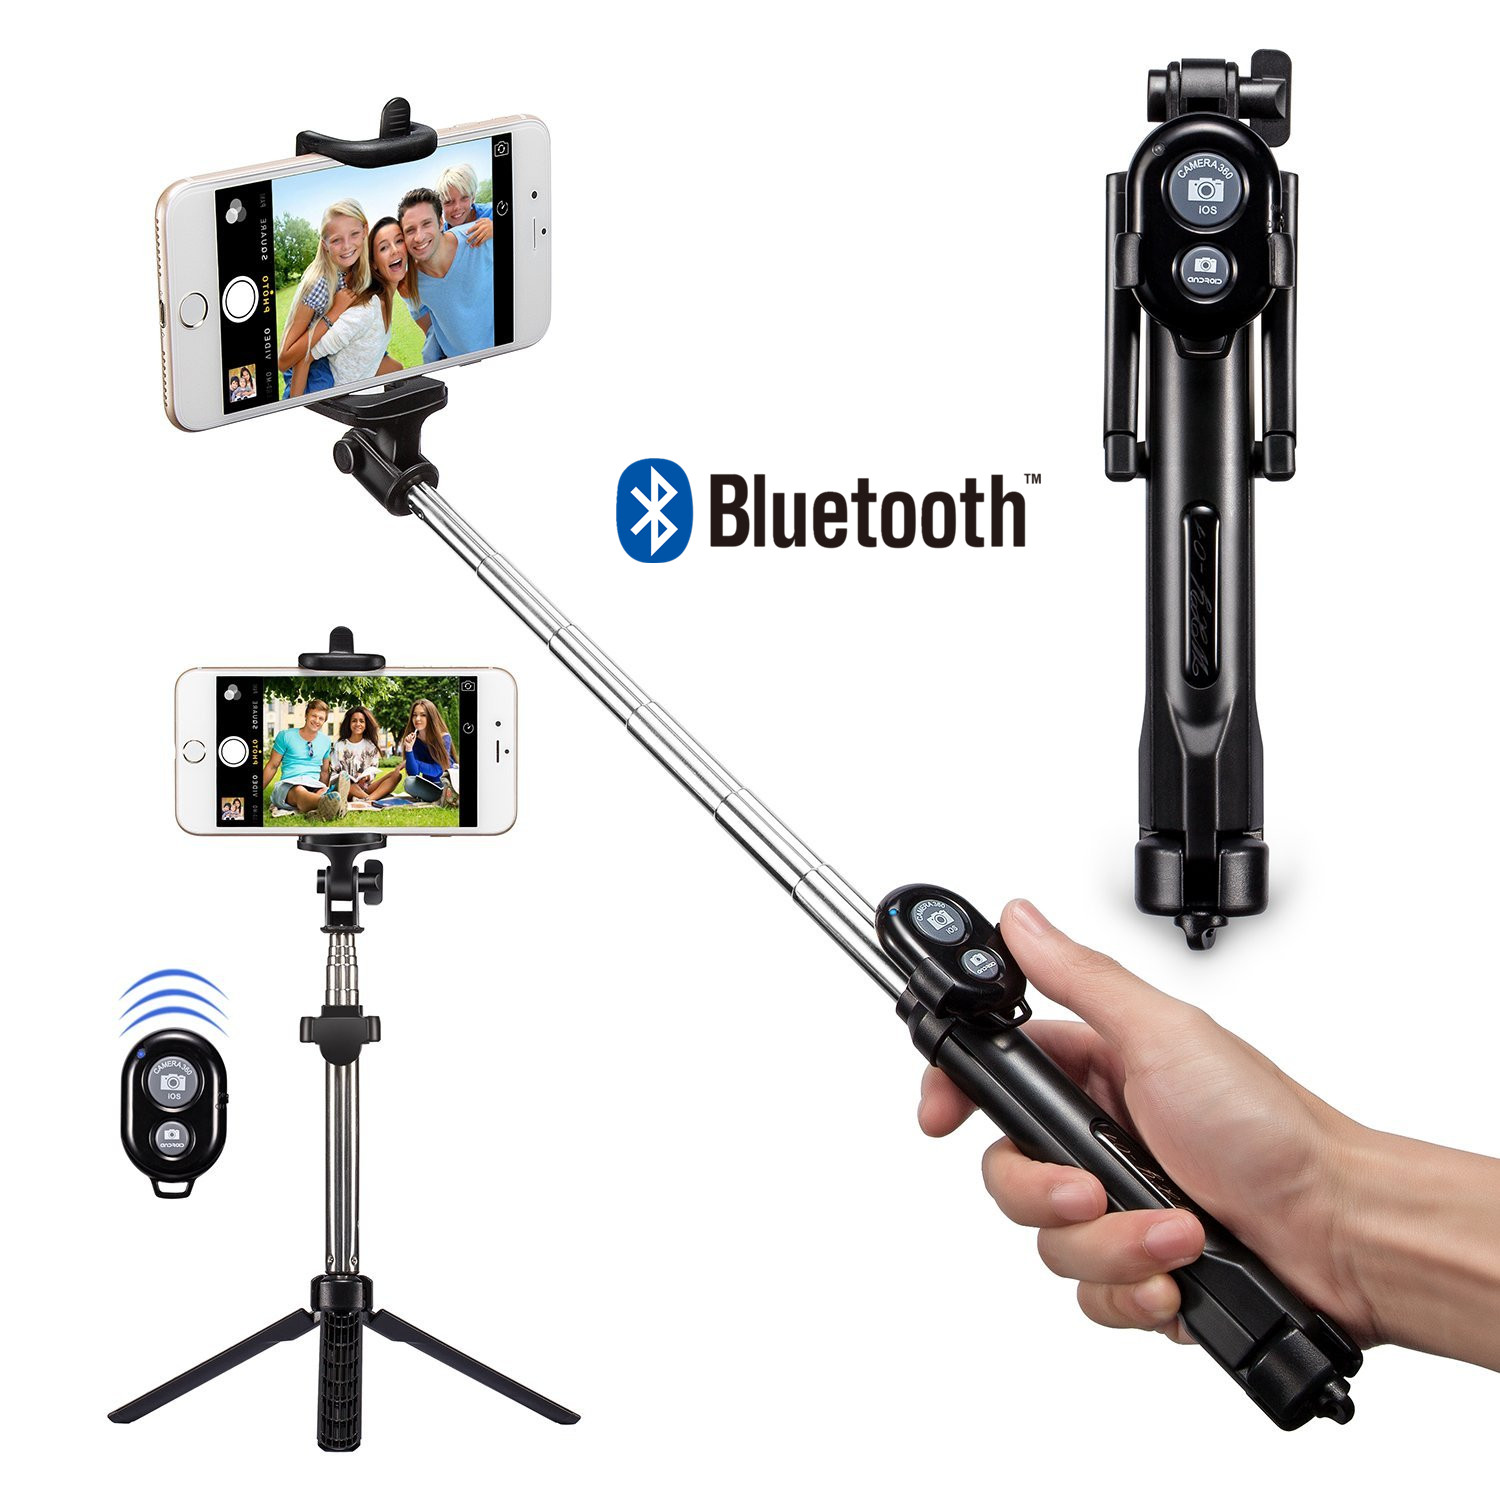 FGHGF T1 Foldable Bluetooth Shutter Selfie Stick + Tripod Monopod Sticks Remote Control Stand Holder bluetooth button